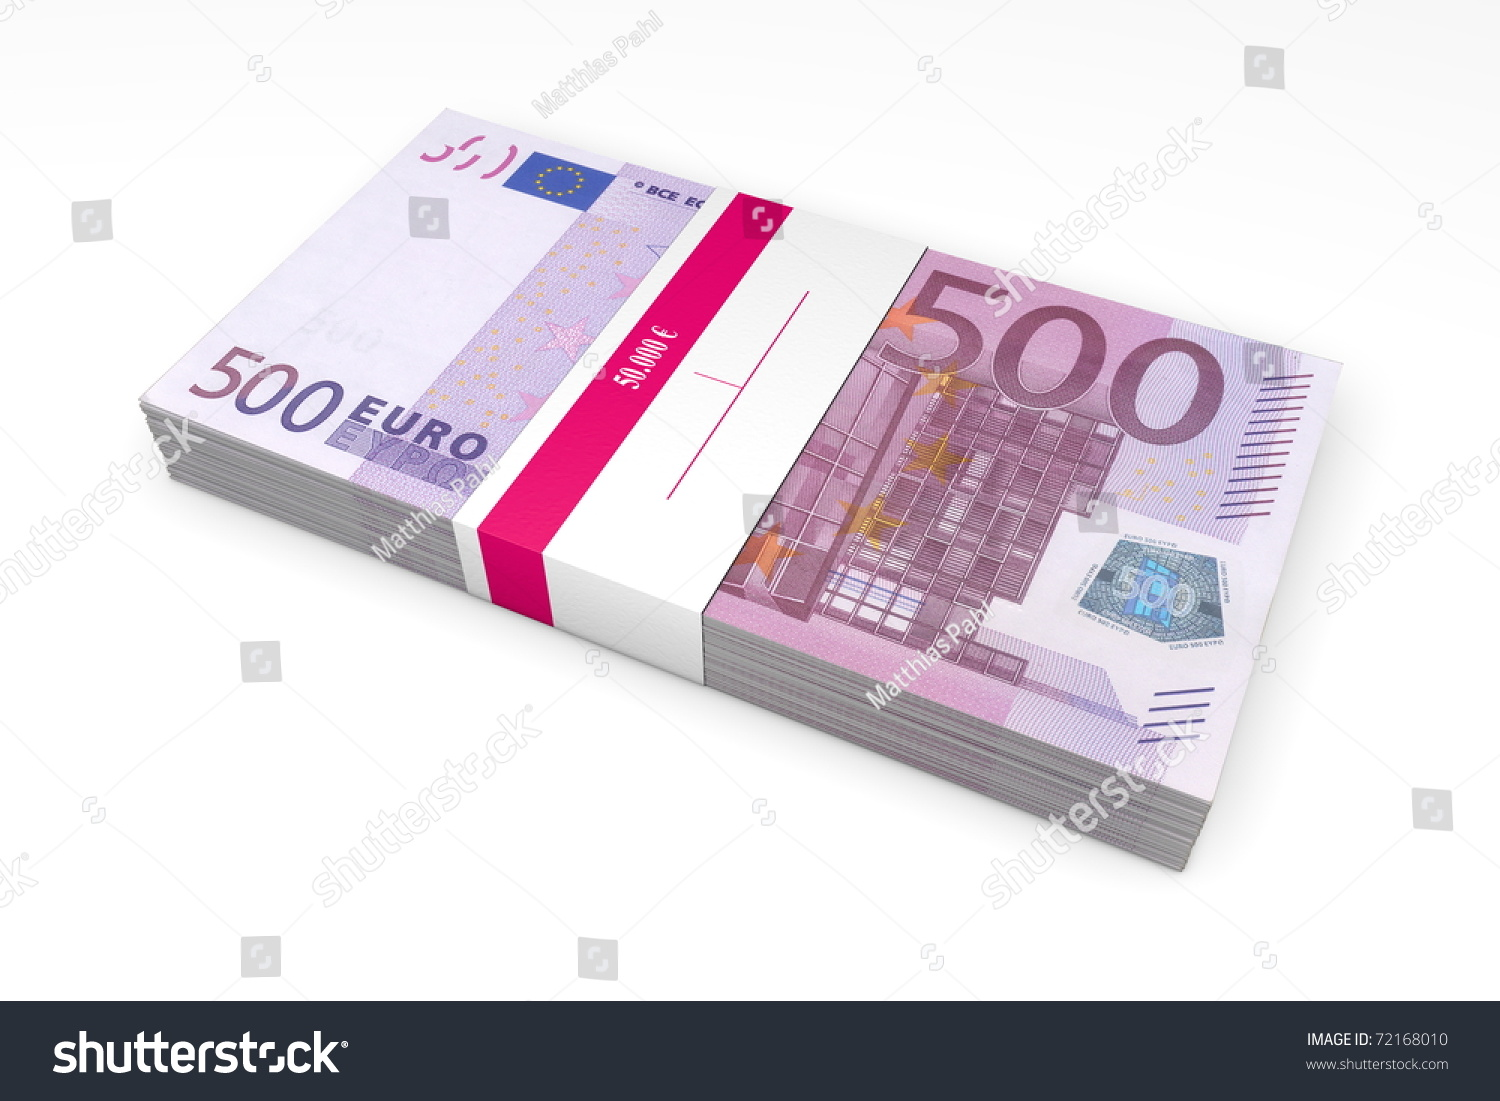 single packet 500 euro notes bank stock illustration 72168010 shutterstock. Black Bedroom Furniture Sets. Home Design Ideas